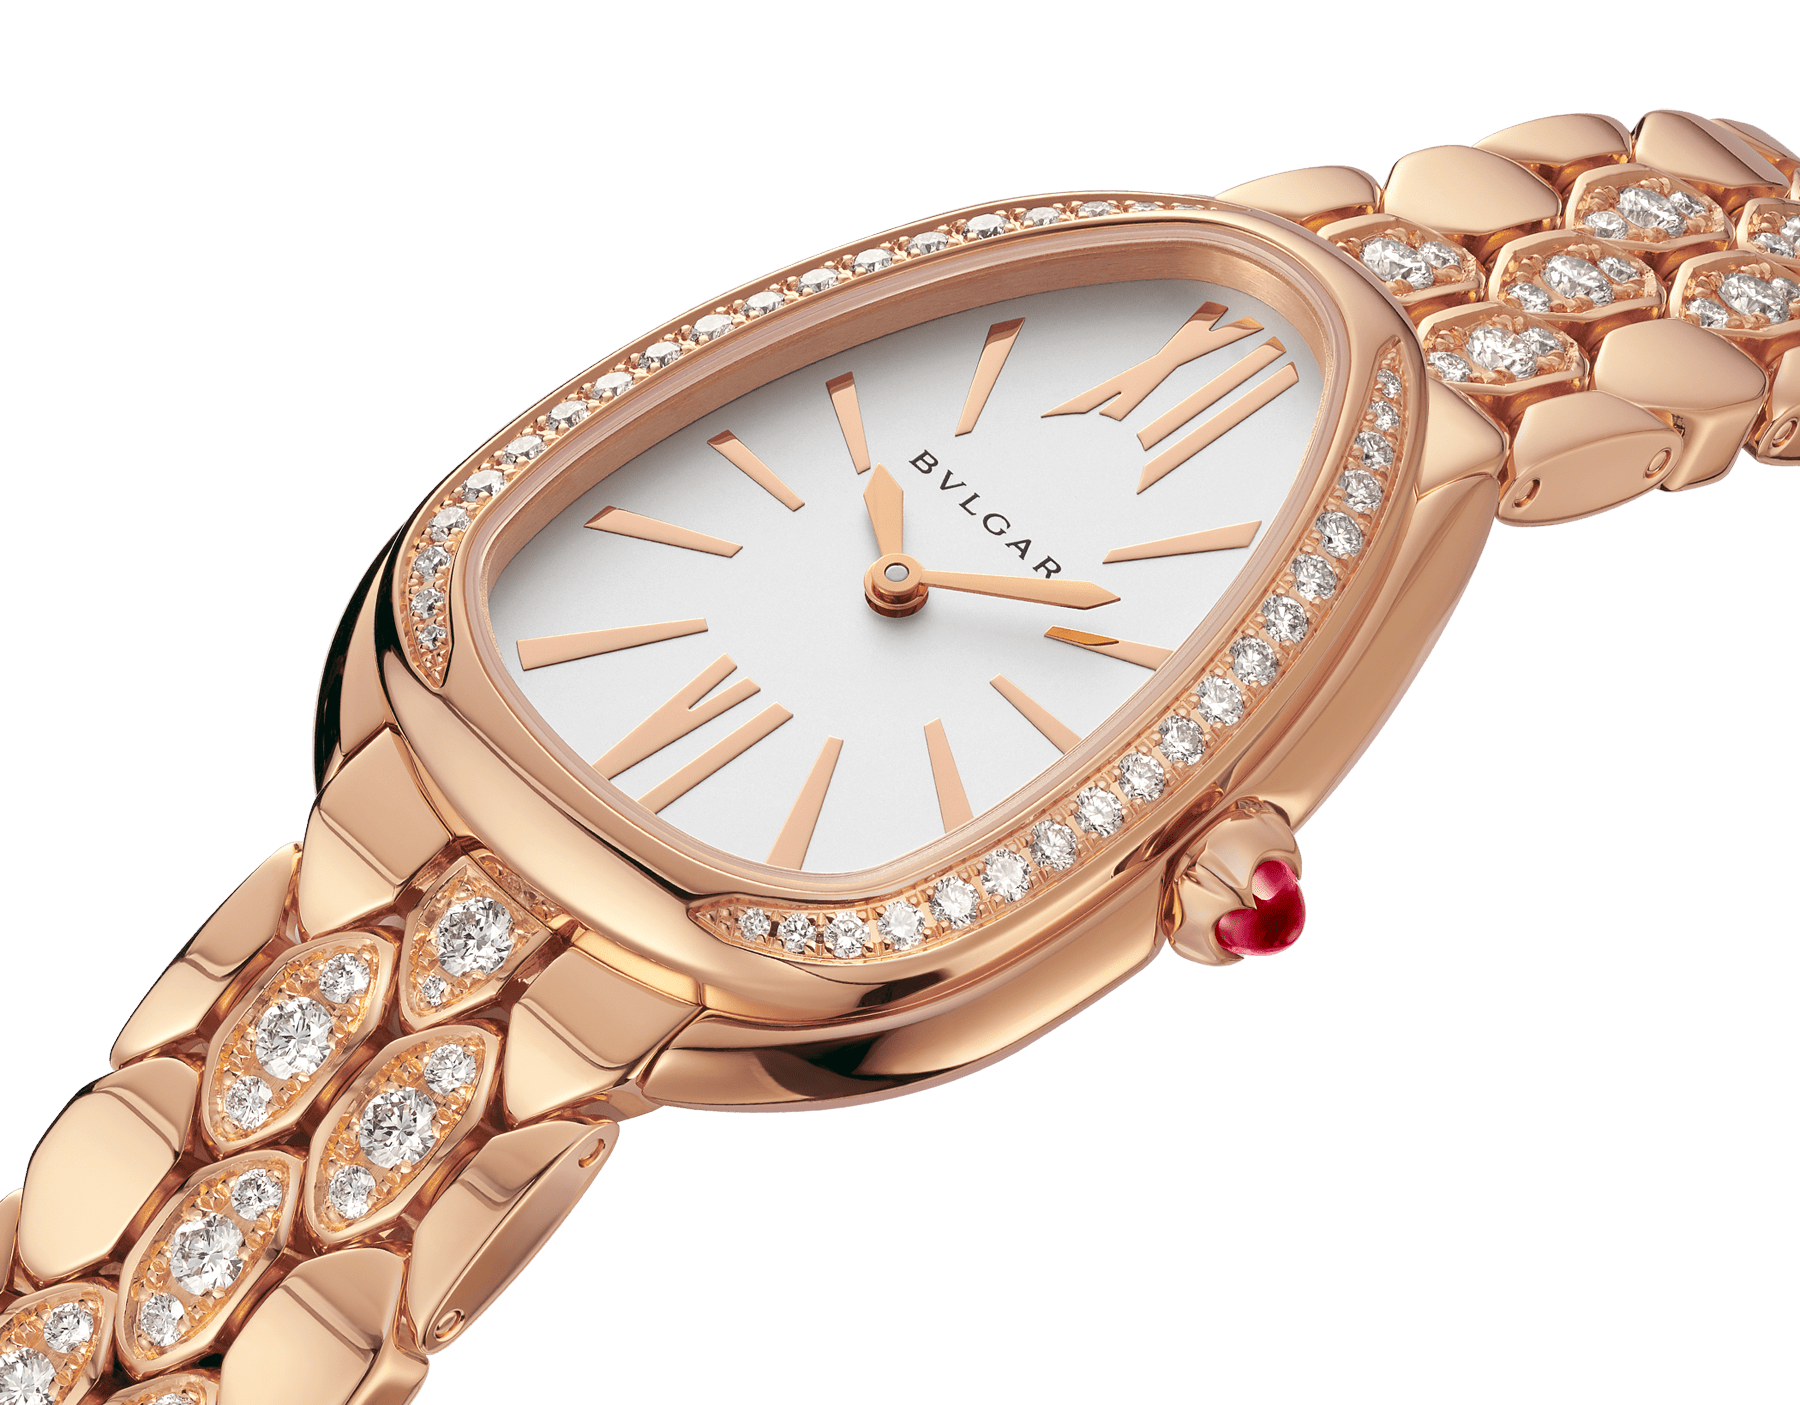 Serpenti Seduttori watch with 18 kt rose gold case and bracelet both set with diamonds, and white dial 103275 image 2